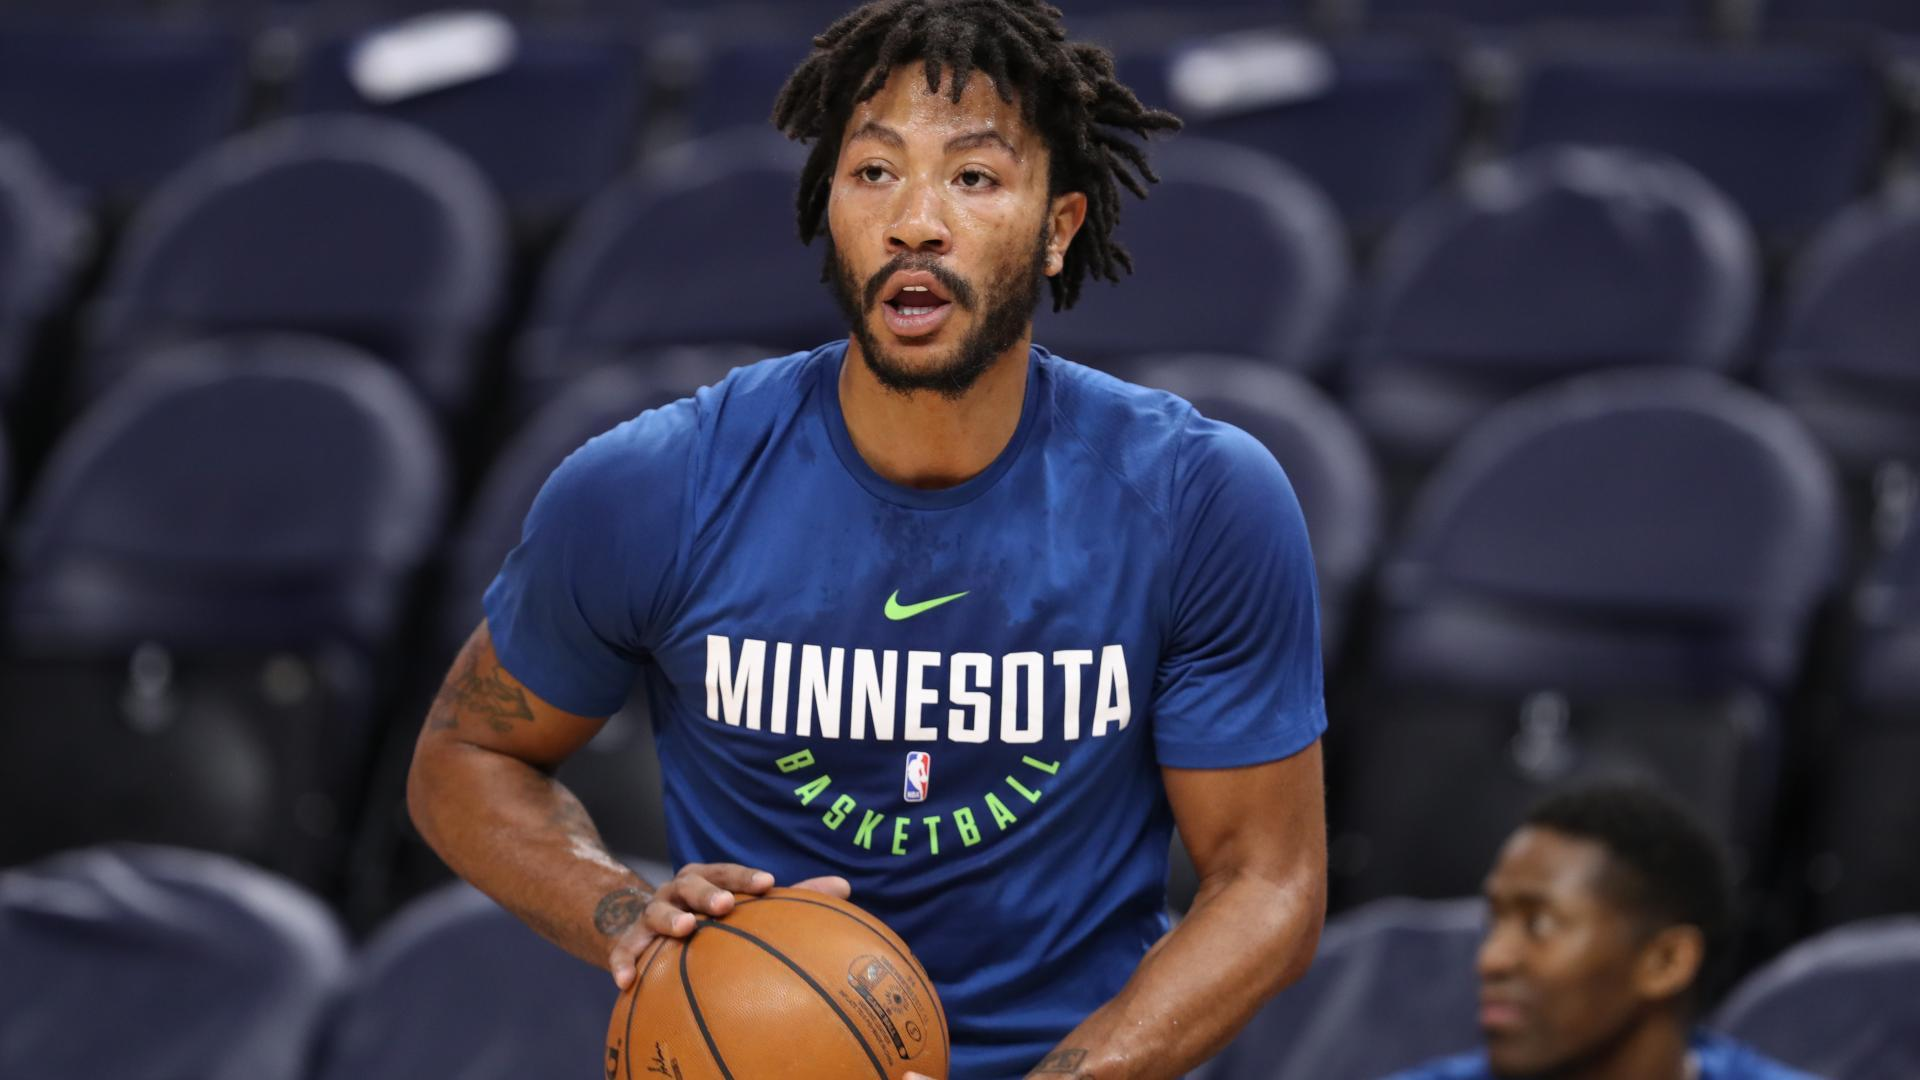 a295865144cc Derrick Rose blocks out doubters as he starts new journey in ...